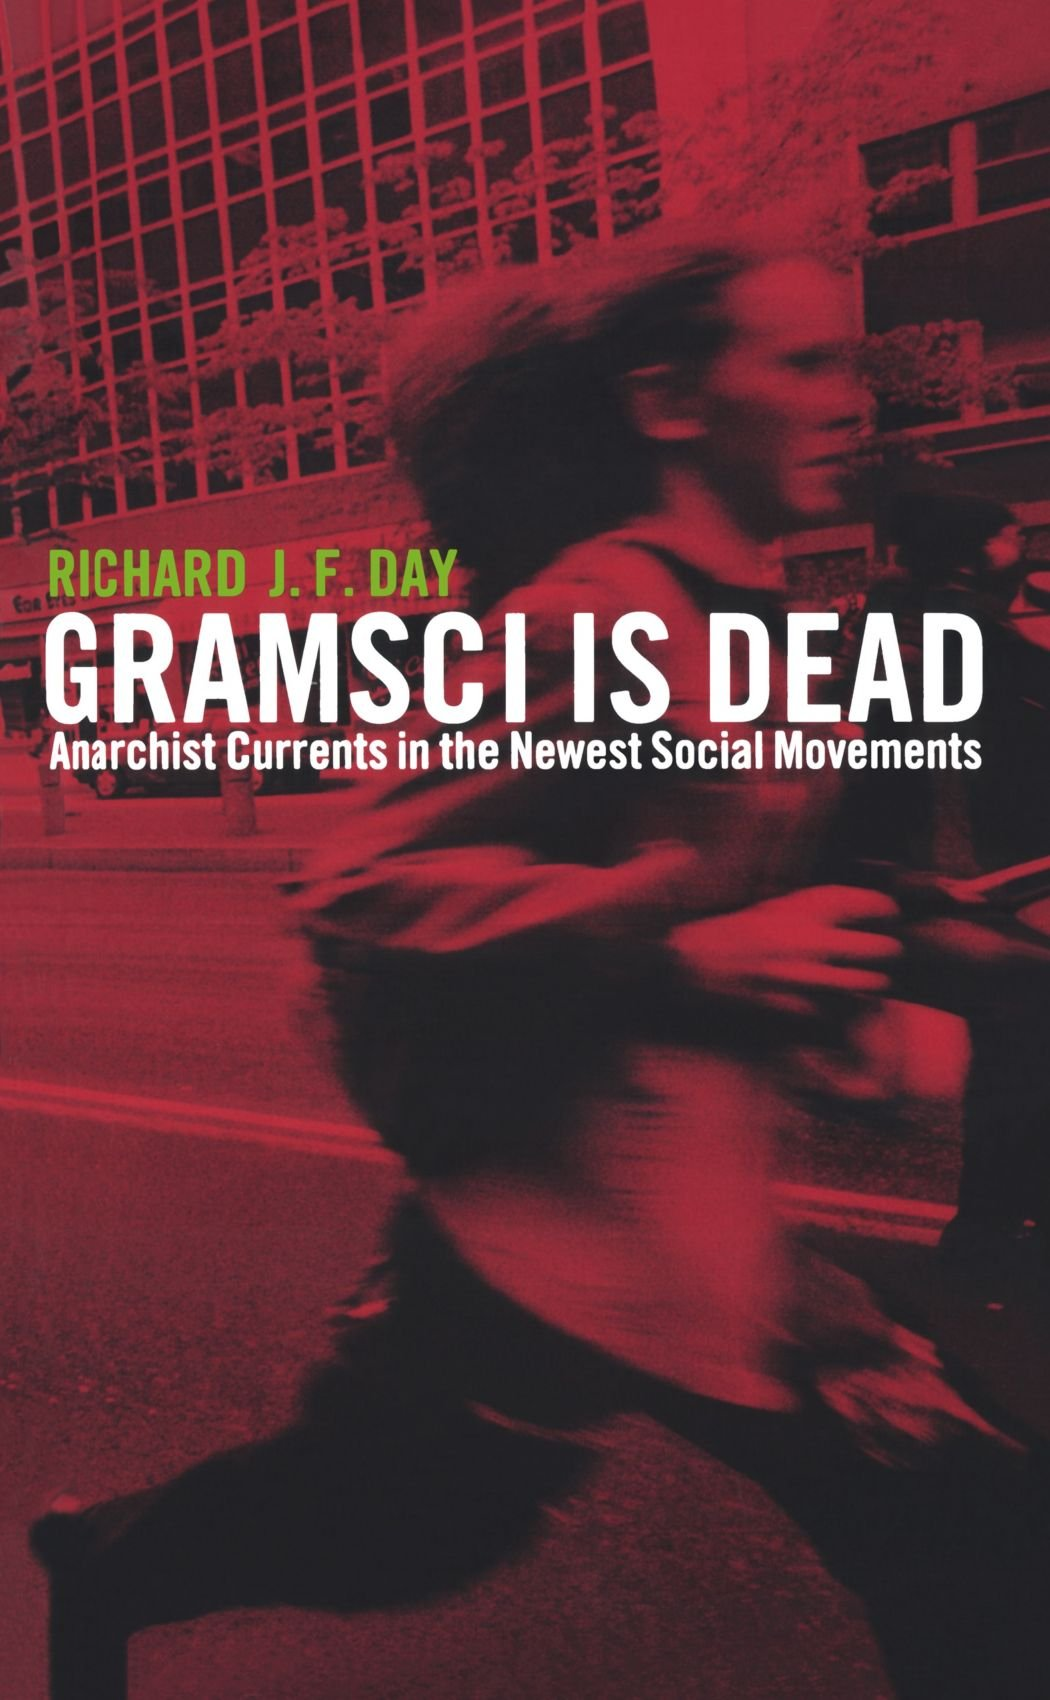 Image for Gramsci is Dead: Anarchist Currents in the Newest Social Movements